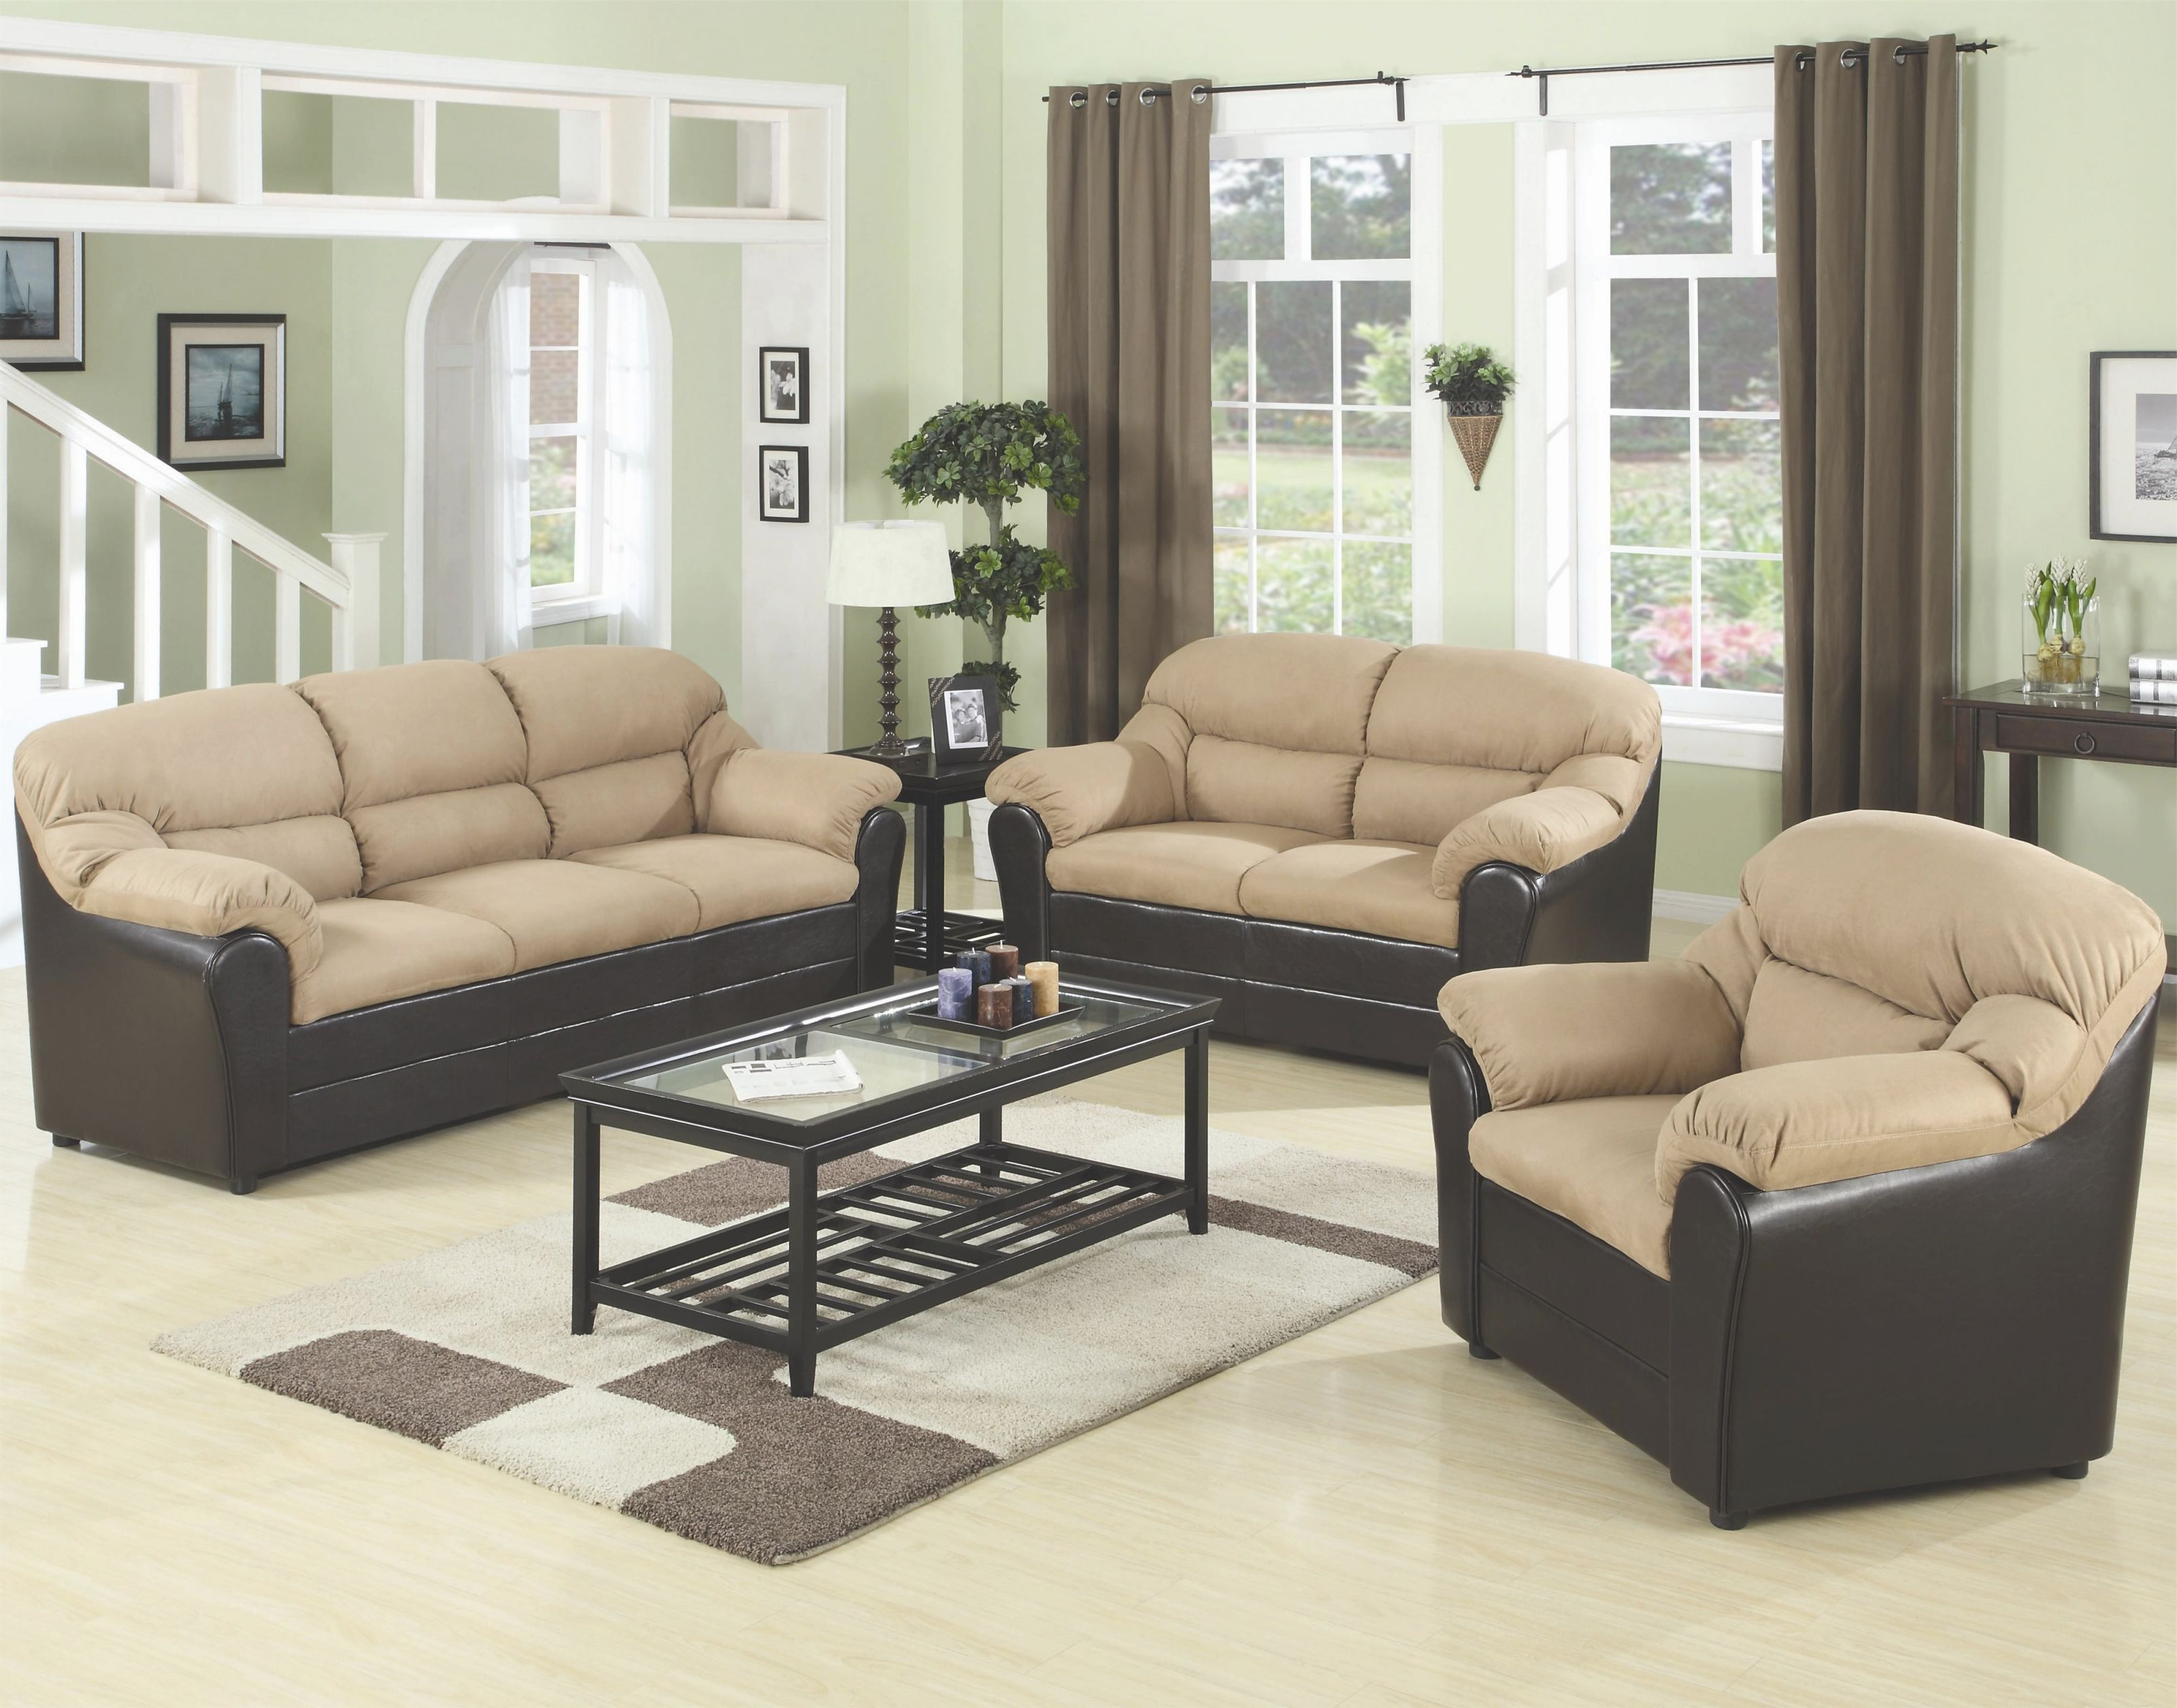 Kitchen Design : Raymour And Flanigan Living Room Furniture within Raymour And Flanigan Living Room Sets